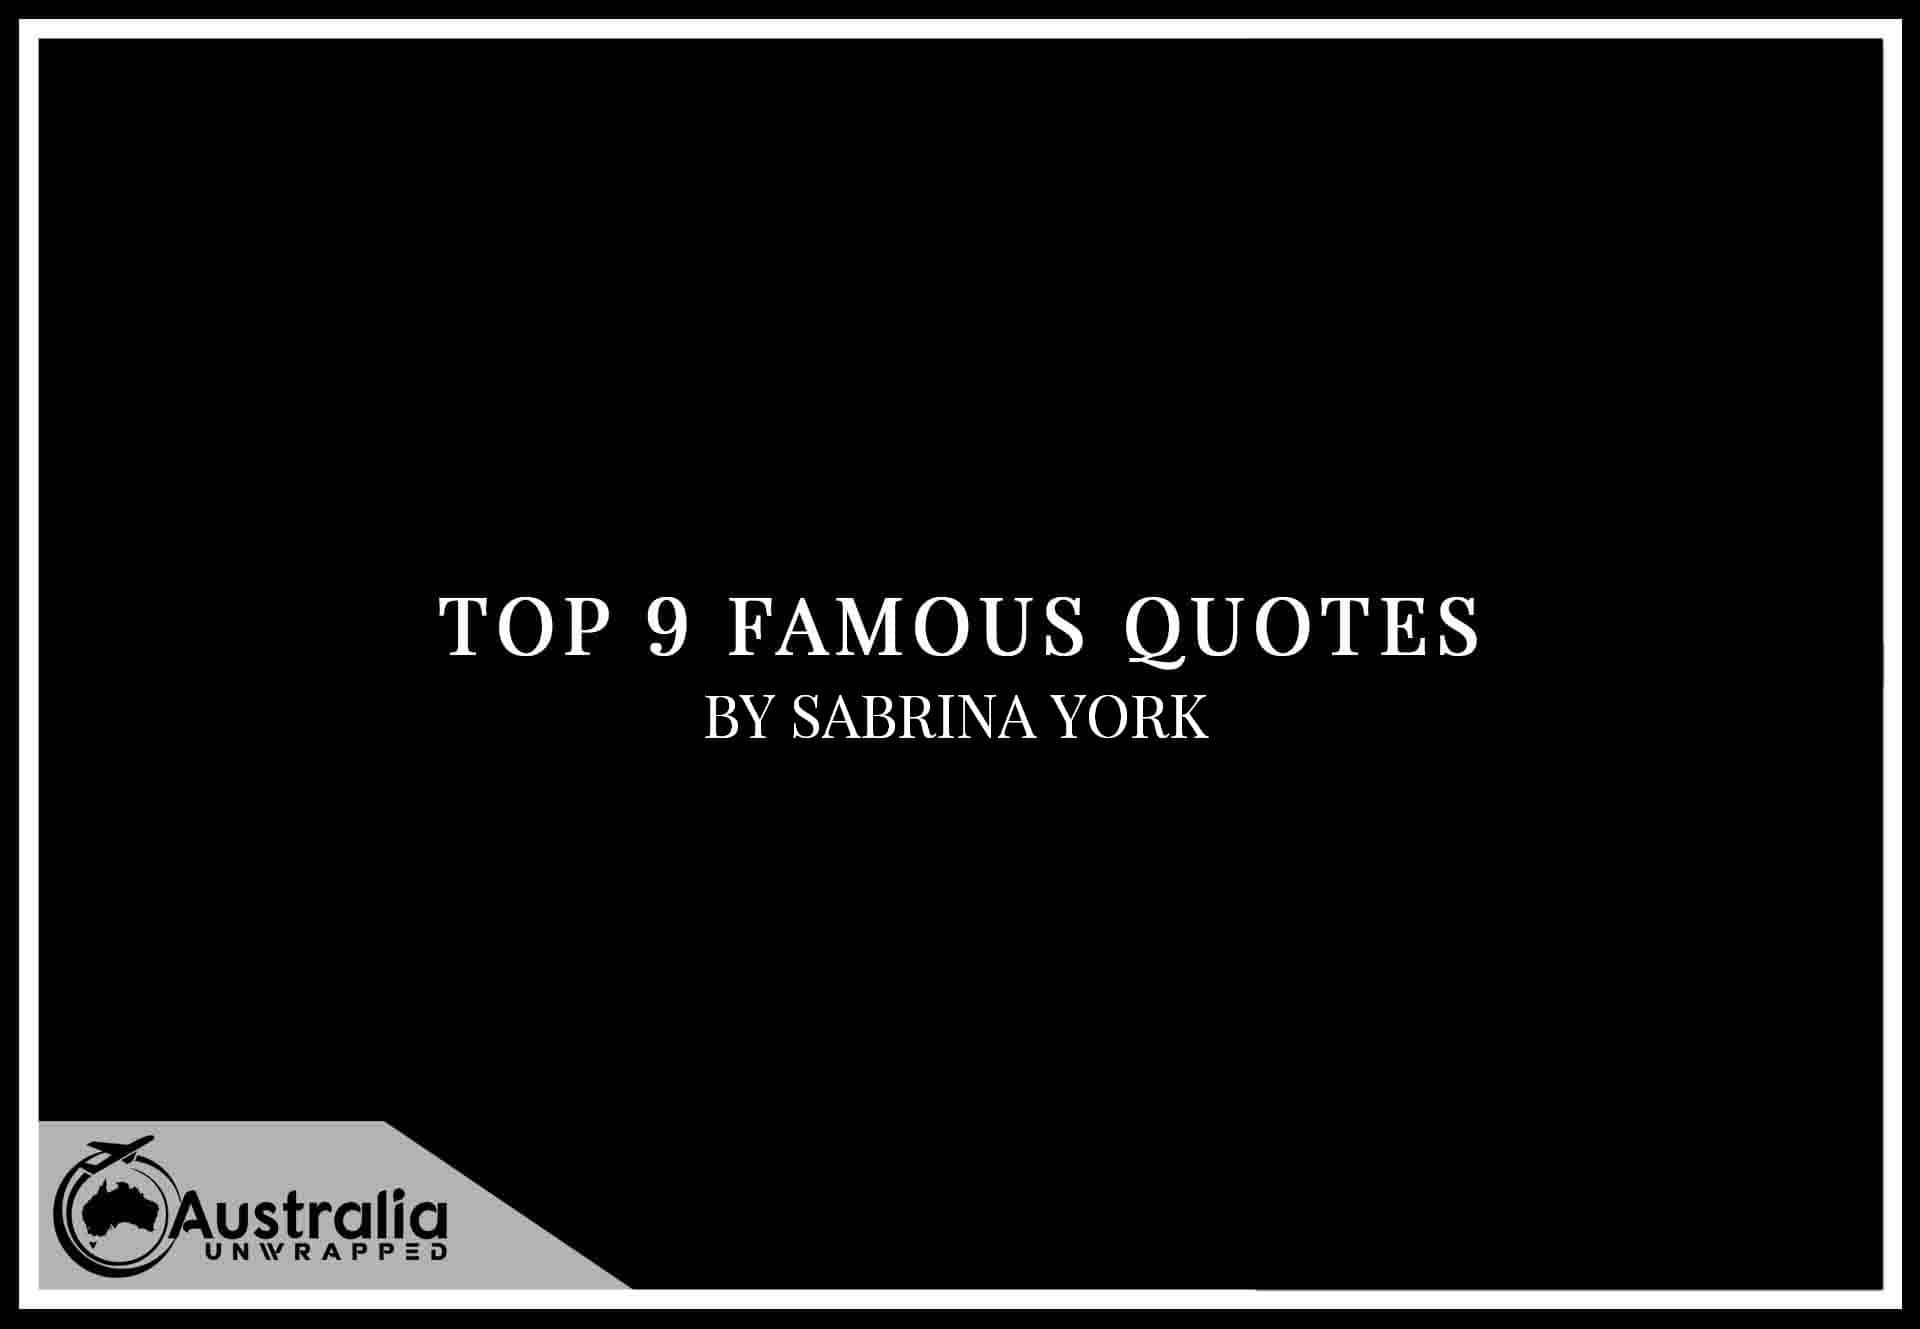 Top 9 Famous Quotes by Author Sabrina York